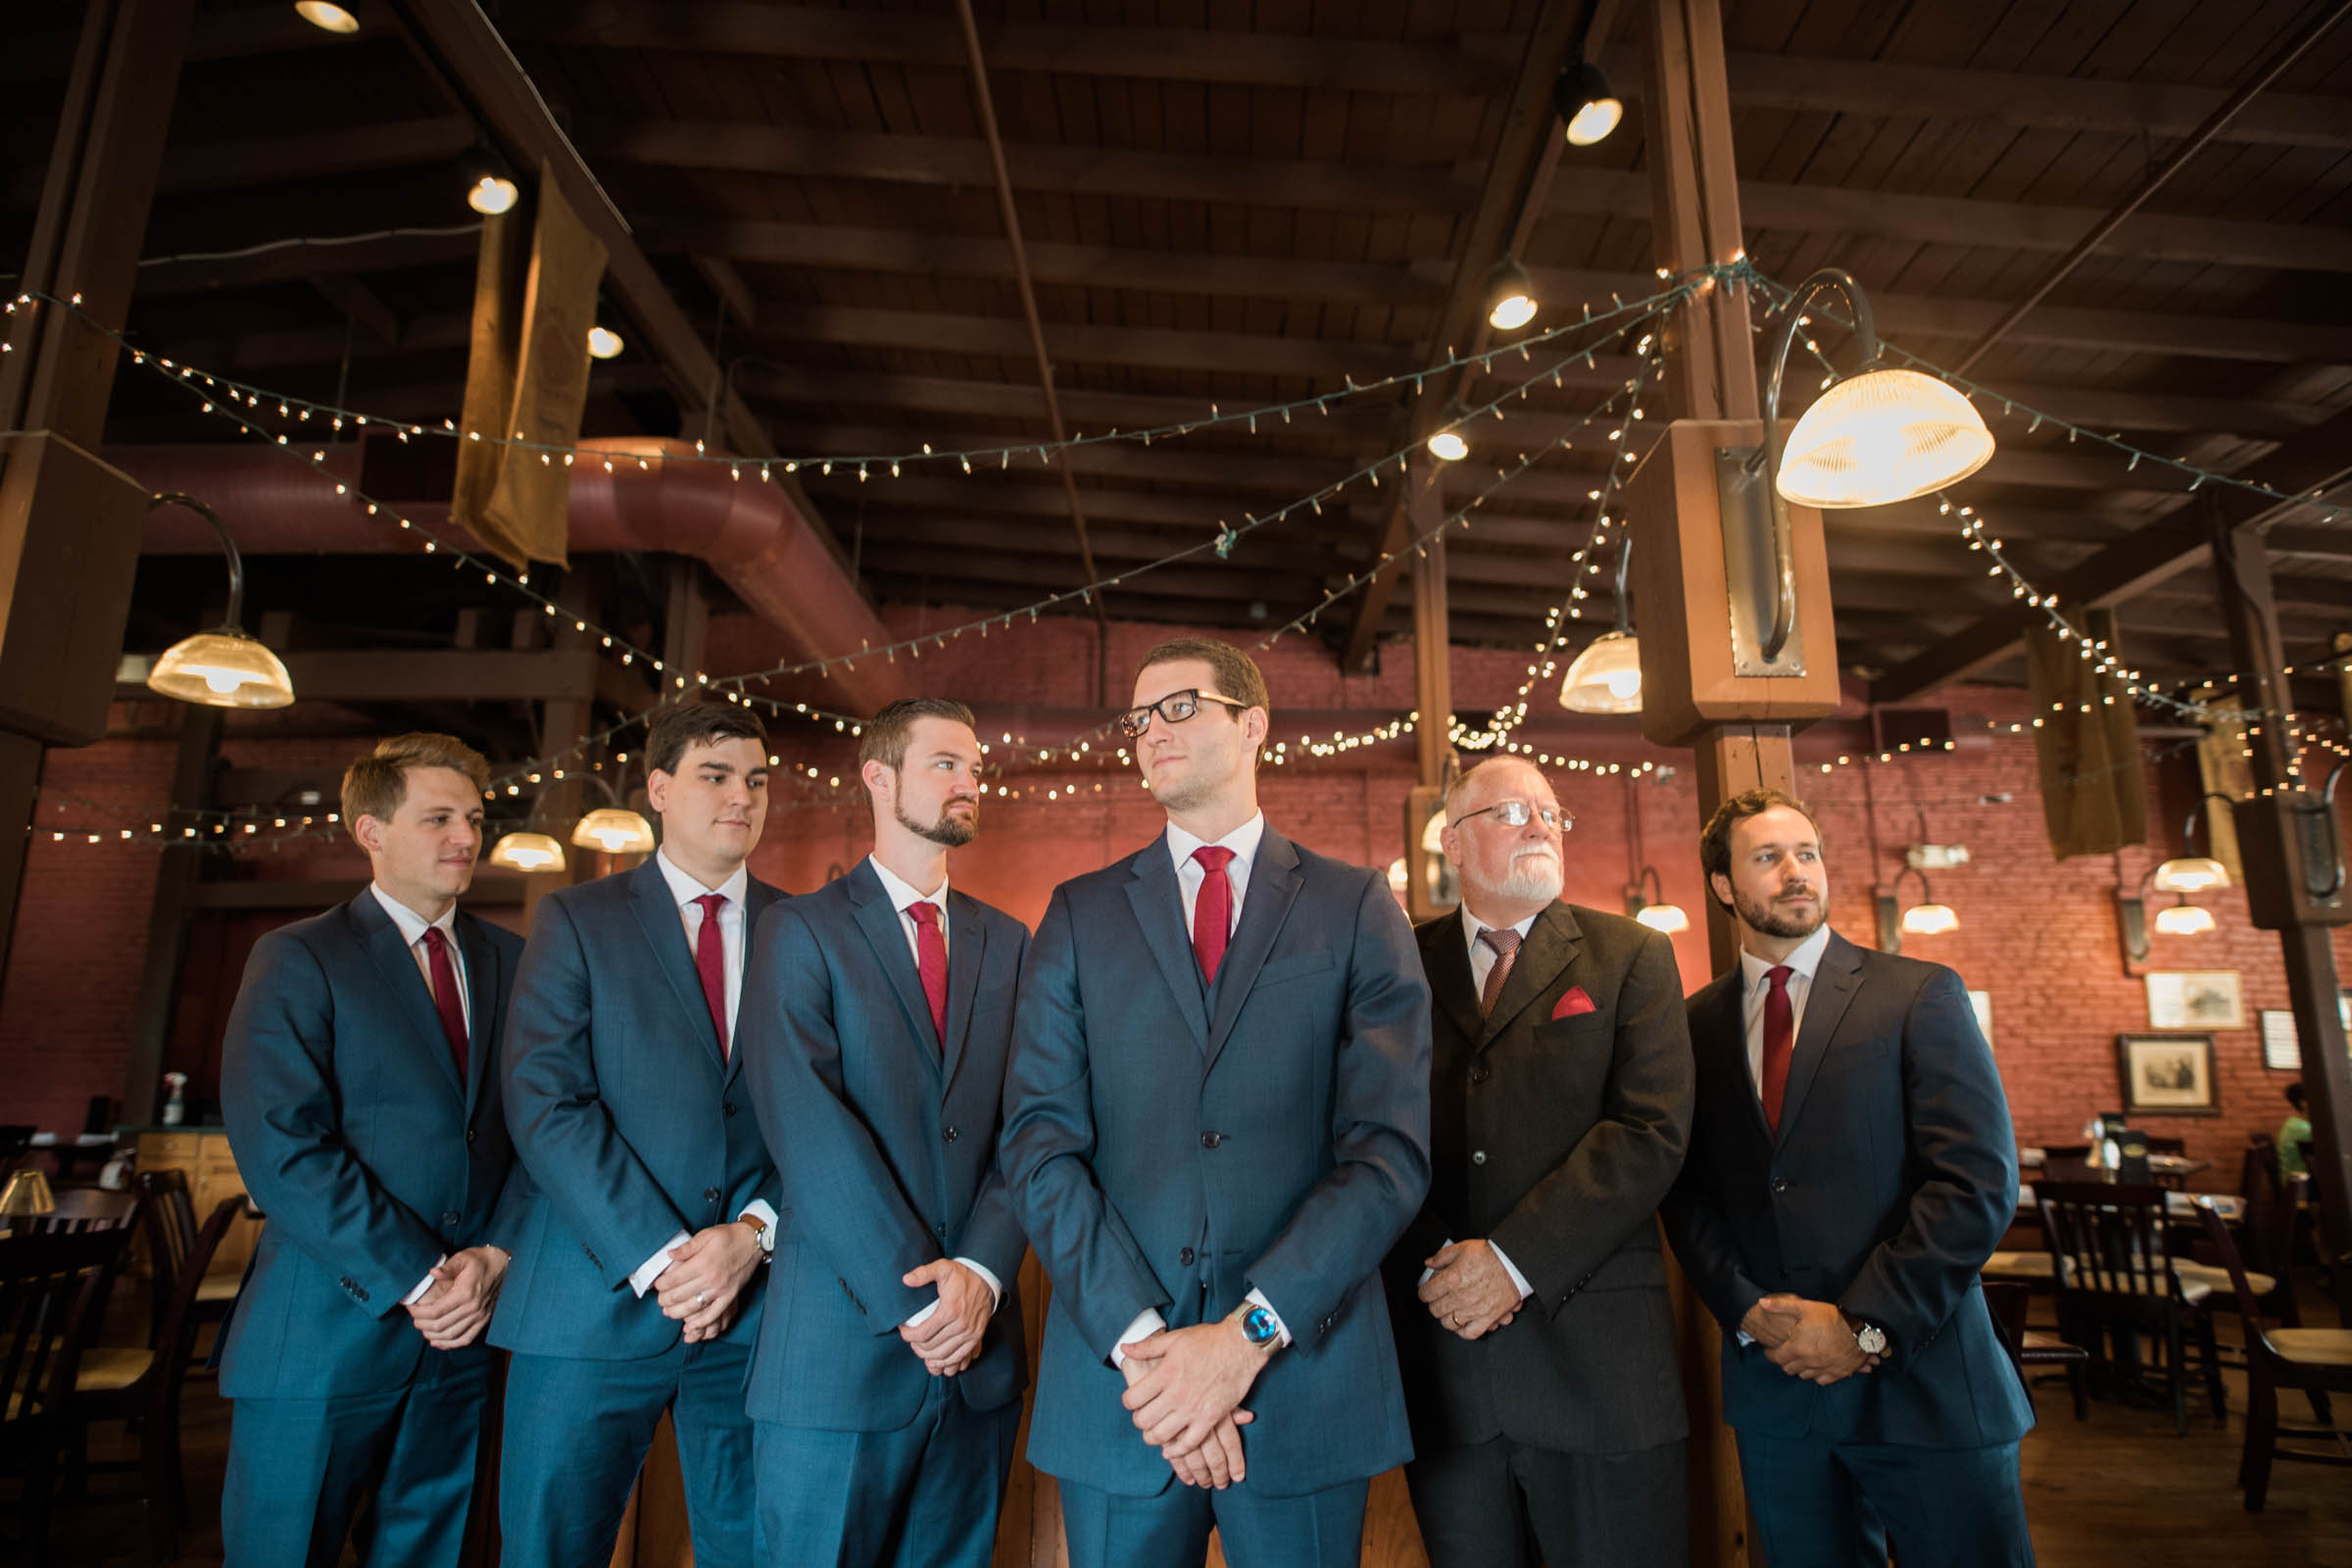 Ellicott City Wedding Photography by Megapixels Media Top Maryland Wedding Photographer Groom with Blue Suit and red tie.jpg